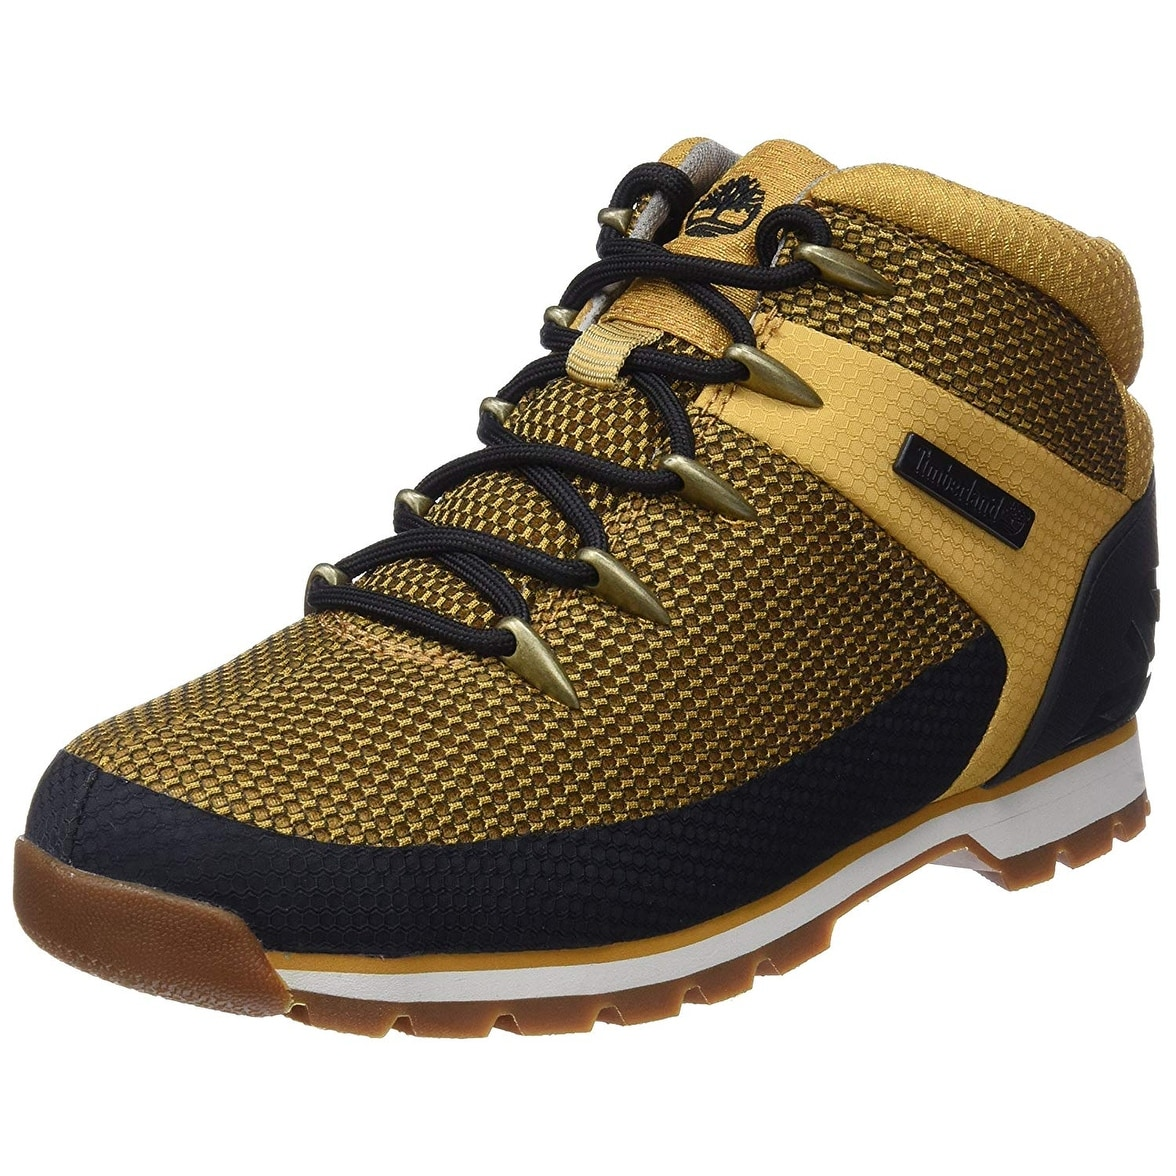 Colega Sinis taquigrafía  Shop Timberland Euro Sprint Hiker Boots A1g5g Wheat Size 8.5 - Overstock -  24265007